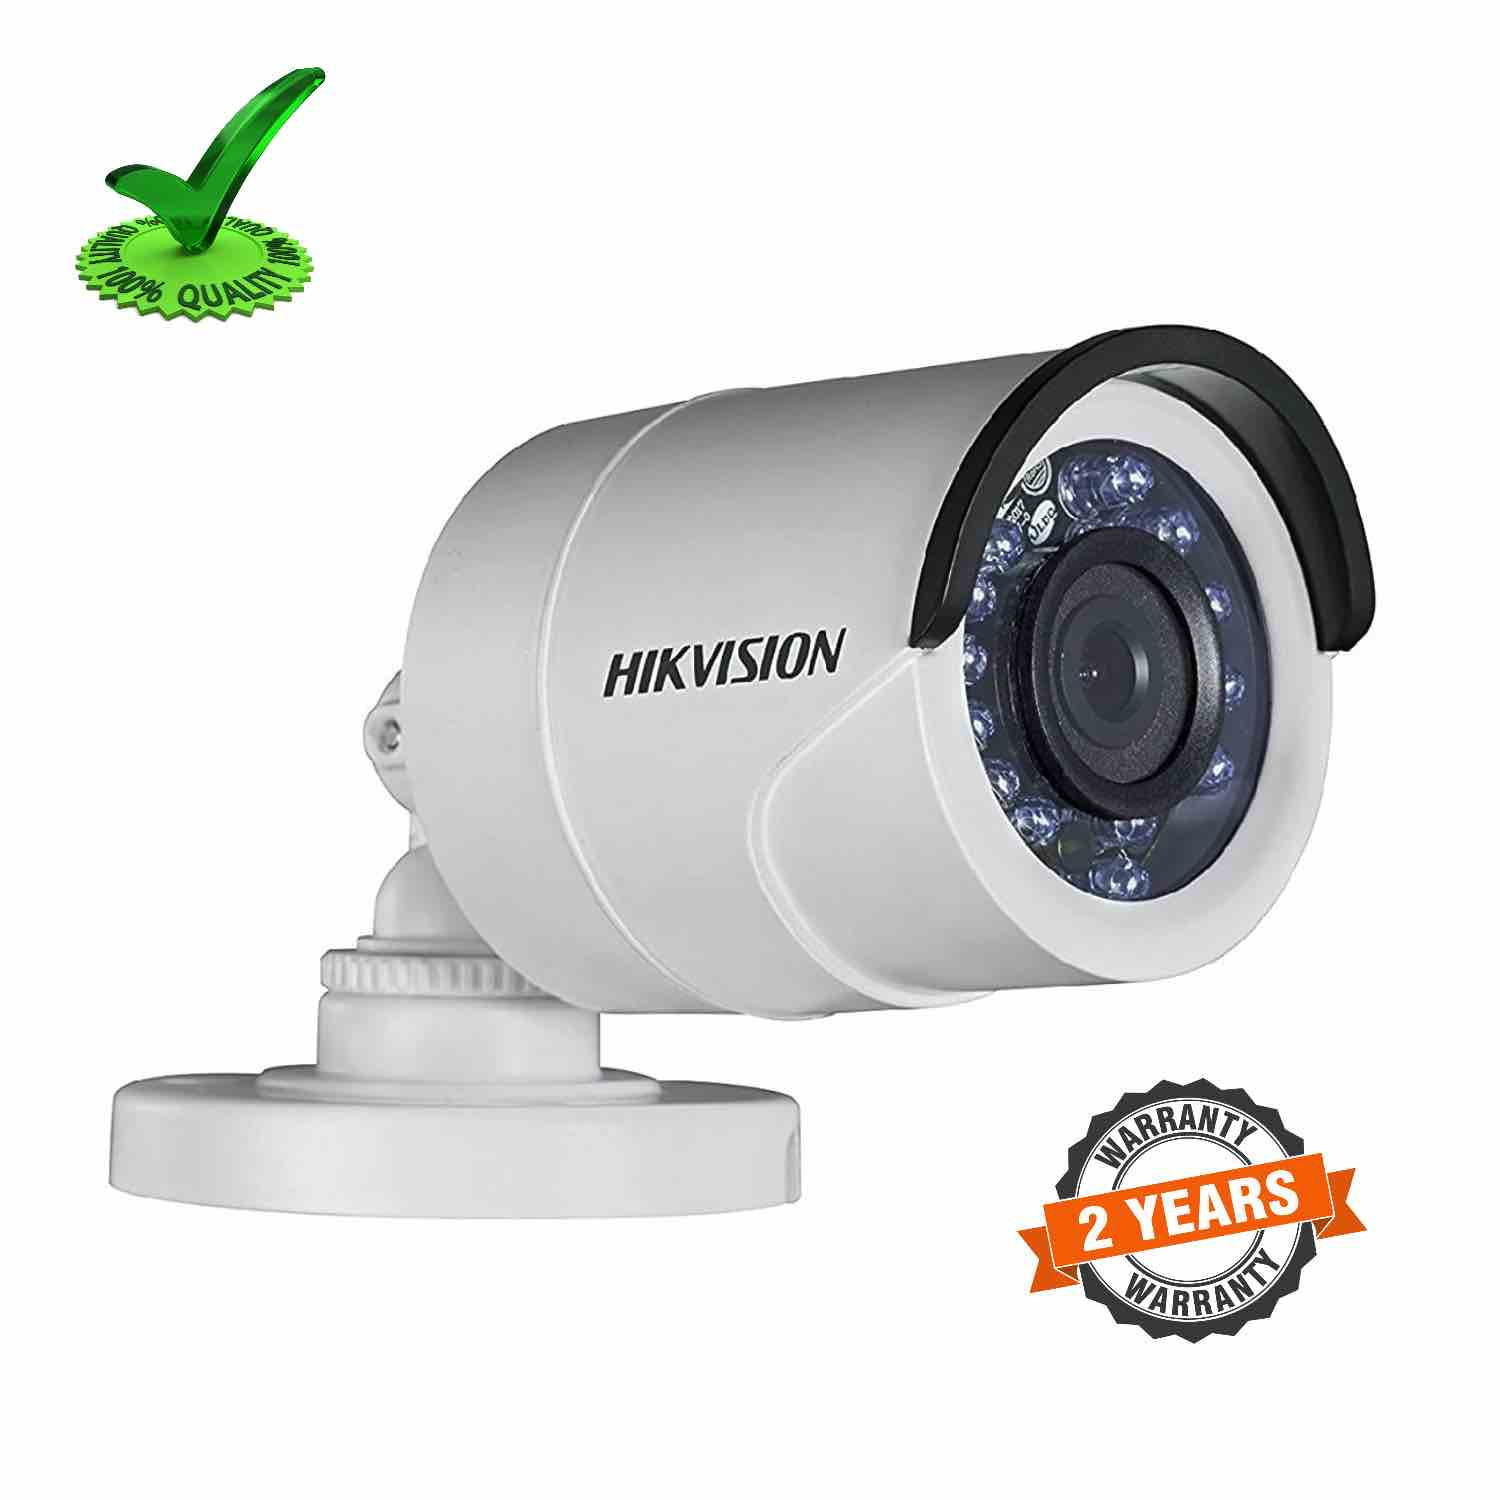 Hikvision DS-2CE1AD0T-IRPF 2mp FHD 1080p IR Bullet Camera